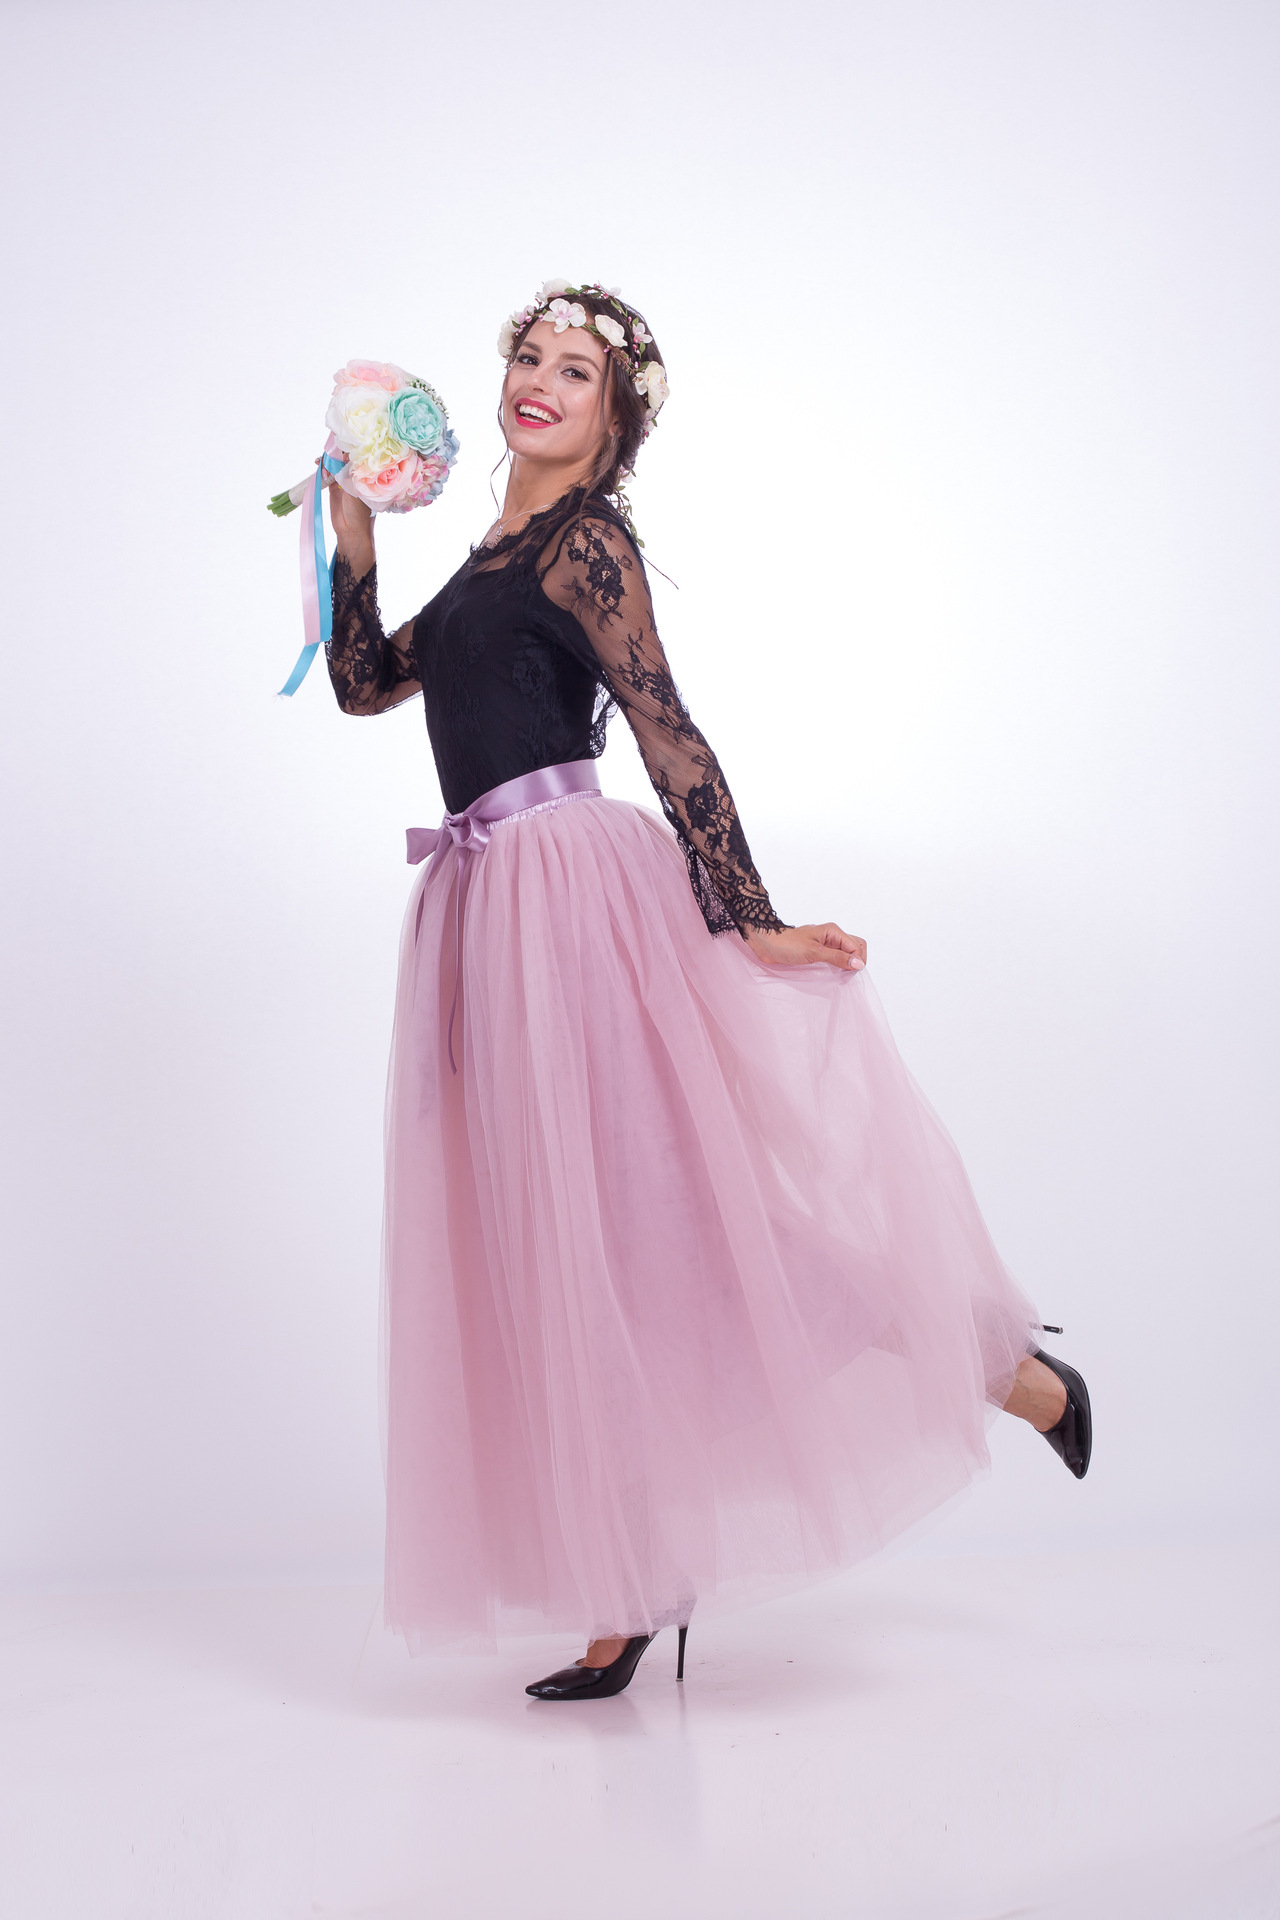 6 Layers Tulle Skirt Summer Maxi Long Muslim Skirt Womens Elastic Waist Lolita Tutu Skirts dusty pink